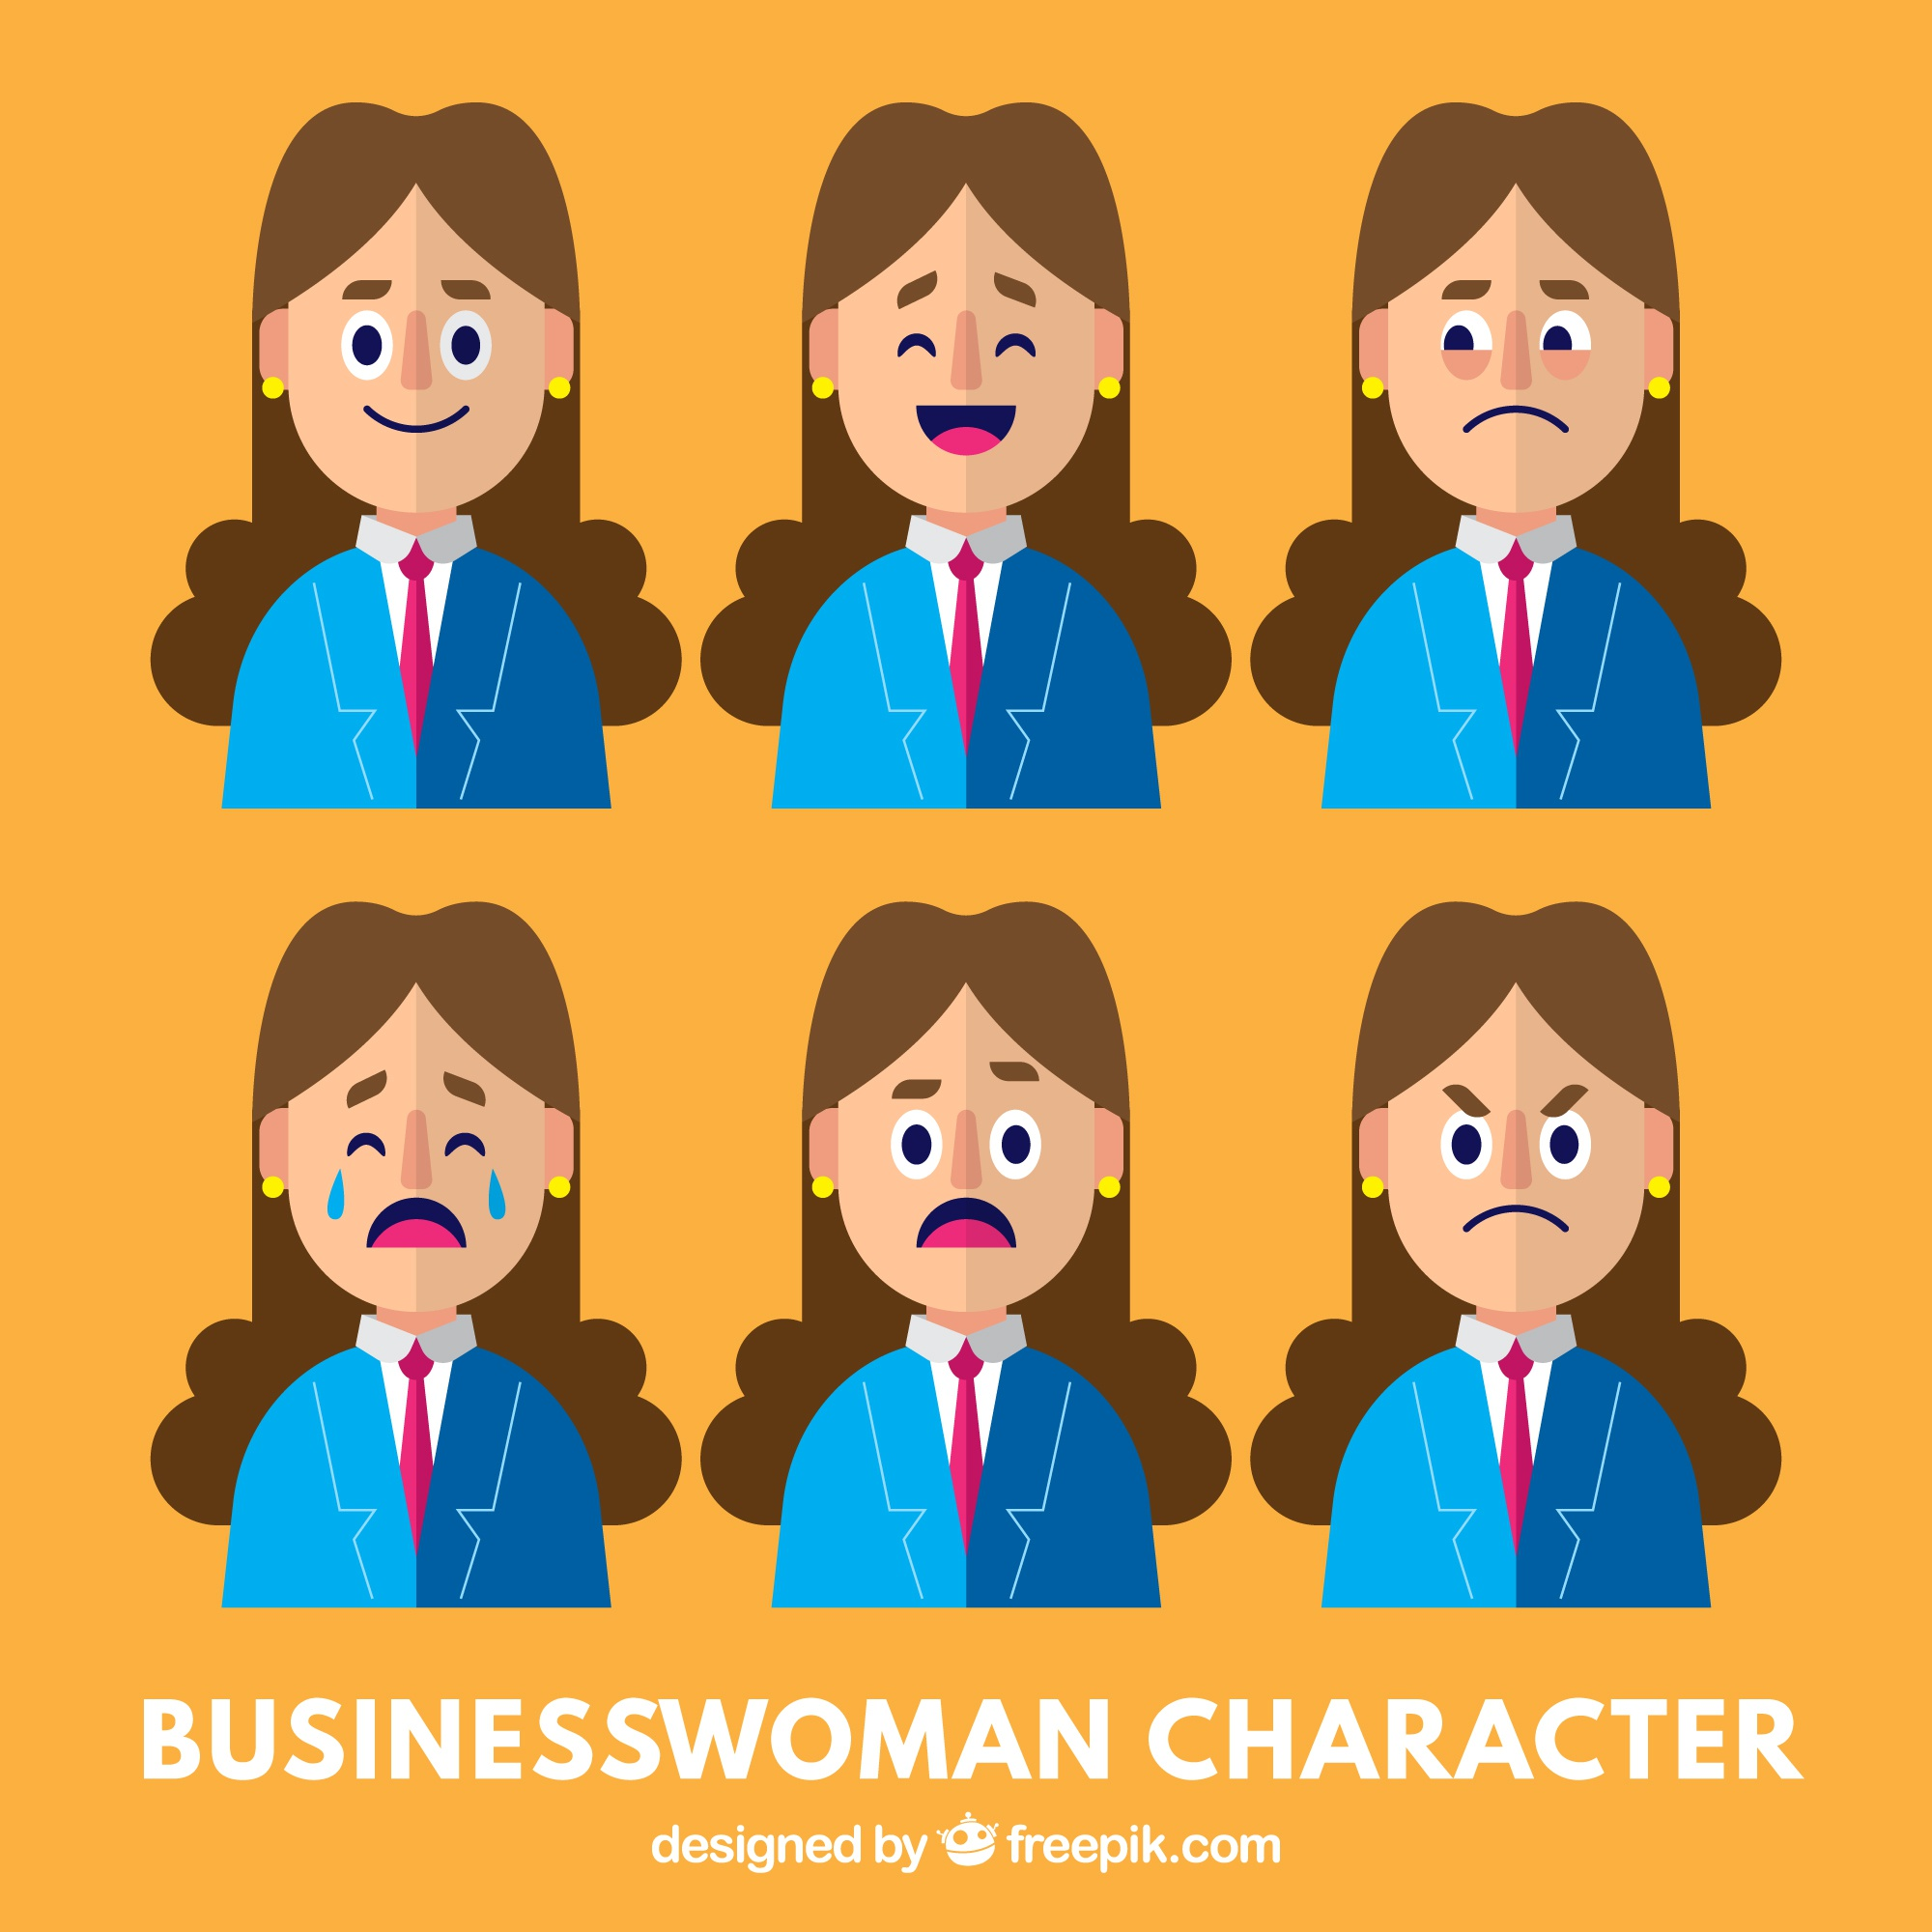 Businesswoman character with variety of facial expressions